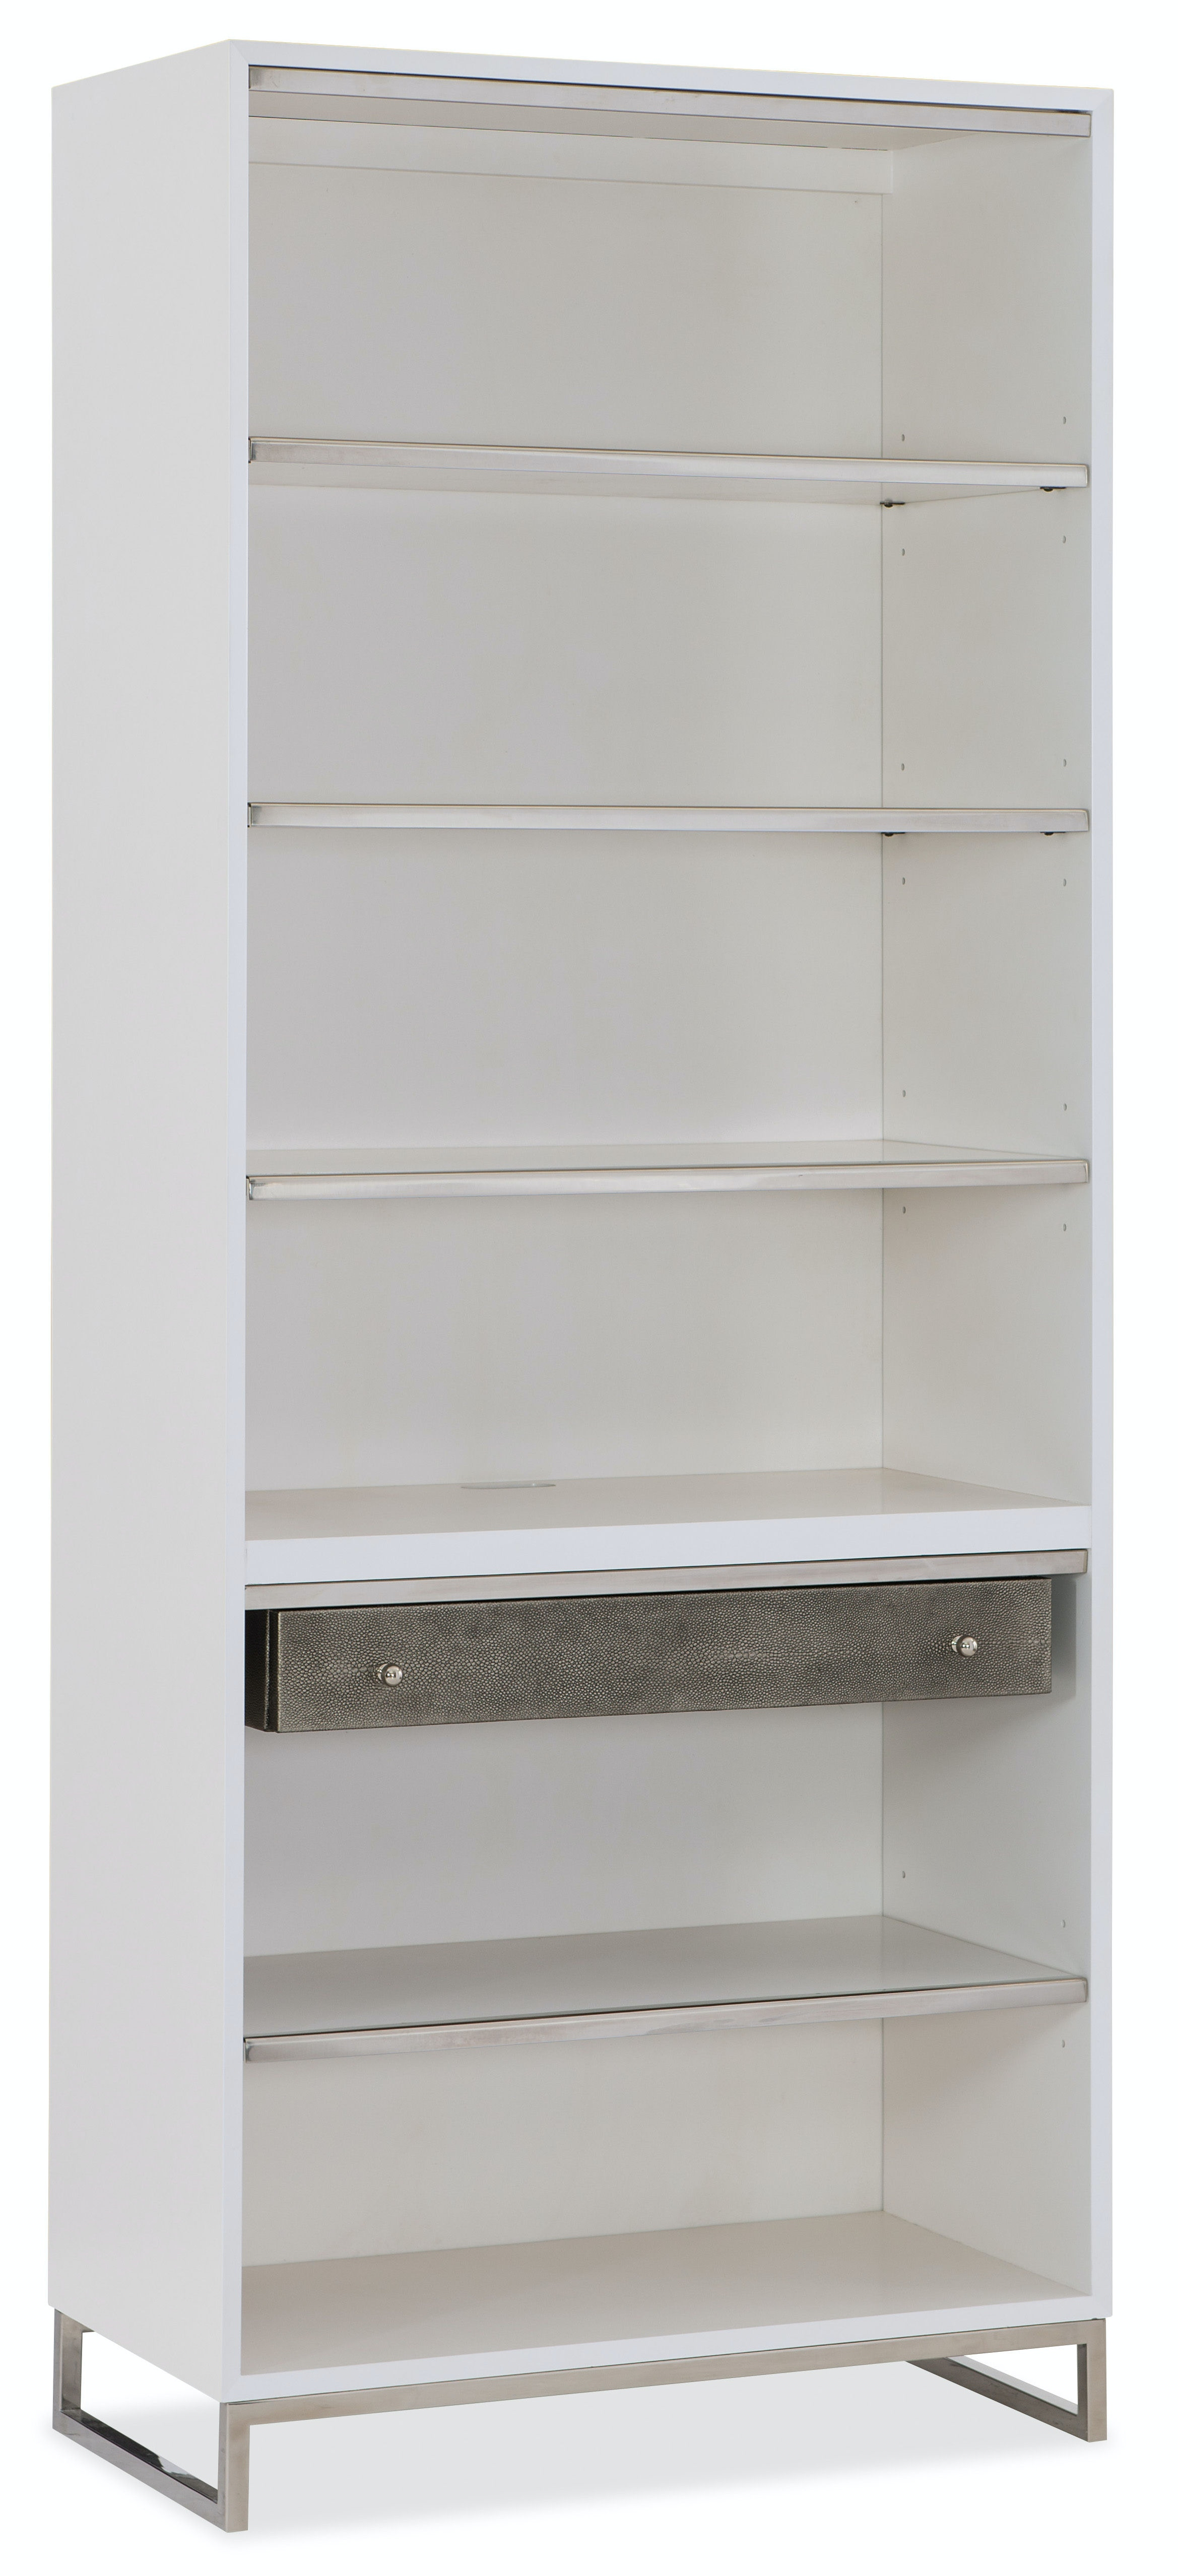 white office bookcase. 5622-10445-WH. Sophisticated Contemporary Bookcase White Office -